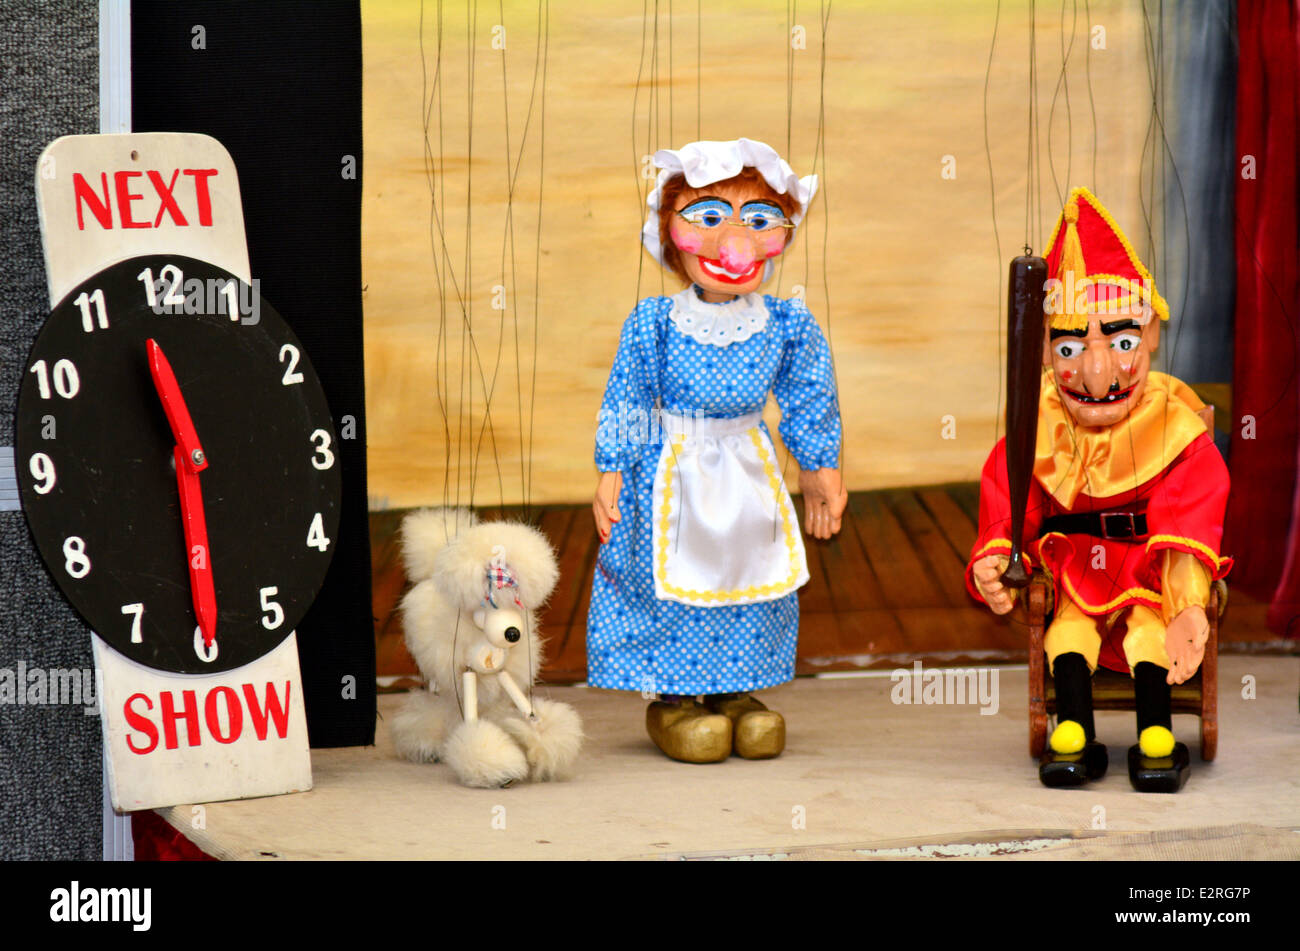 Puppeteer manipulates puppets during puppetry show - Stock Image